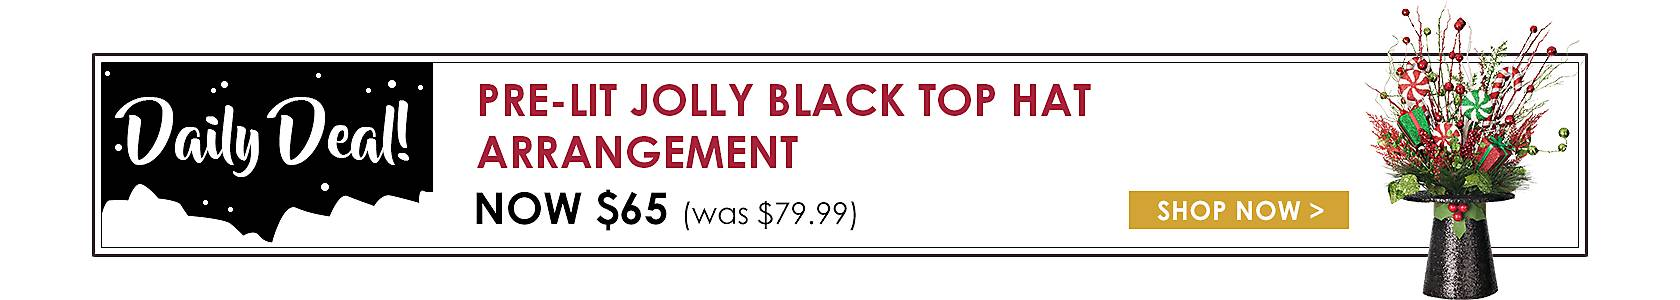 Daily Deals - Pre-Lit Jolly Black Top Hat Arrangement Now $65 - Shop Now